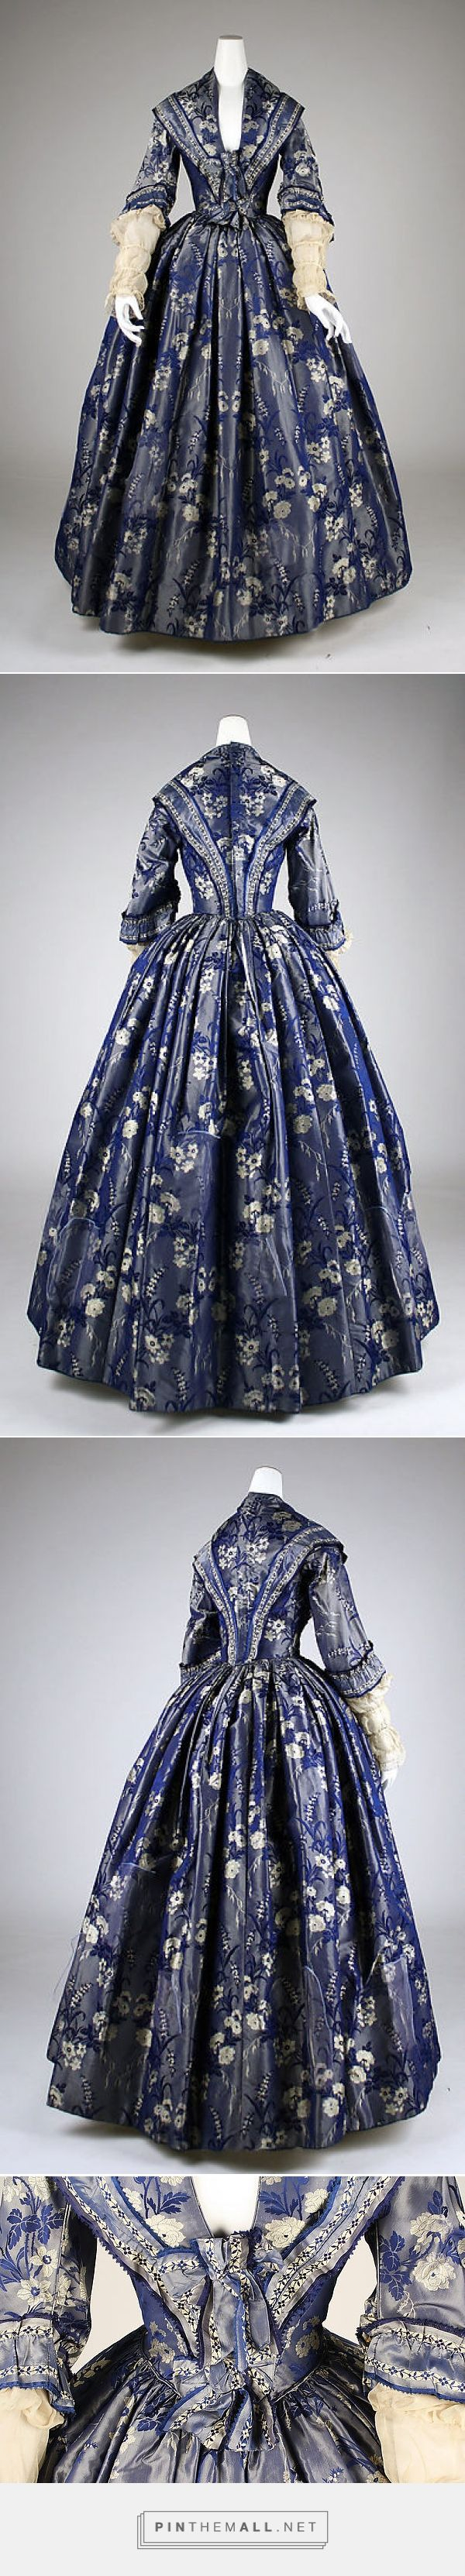 Dress ca. 1842 British | The Metropolitan Museum of Art